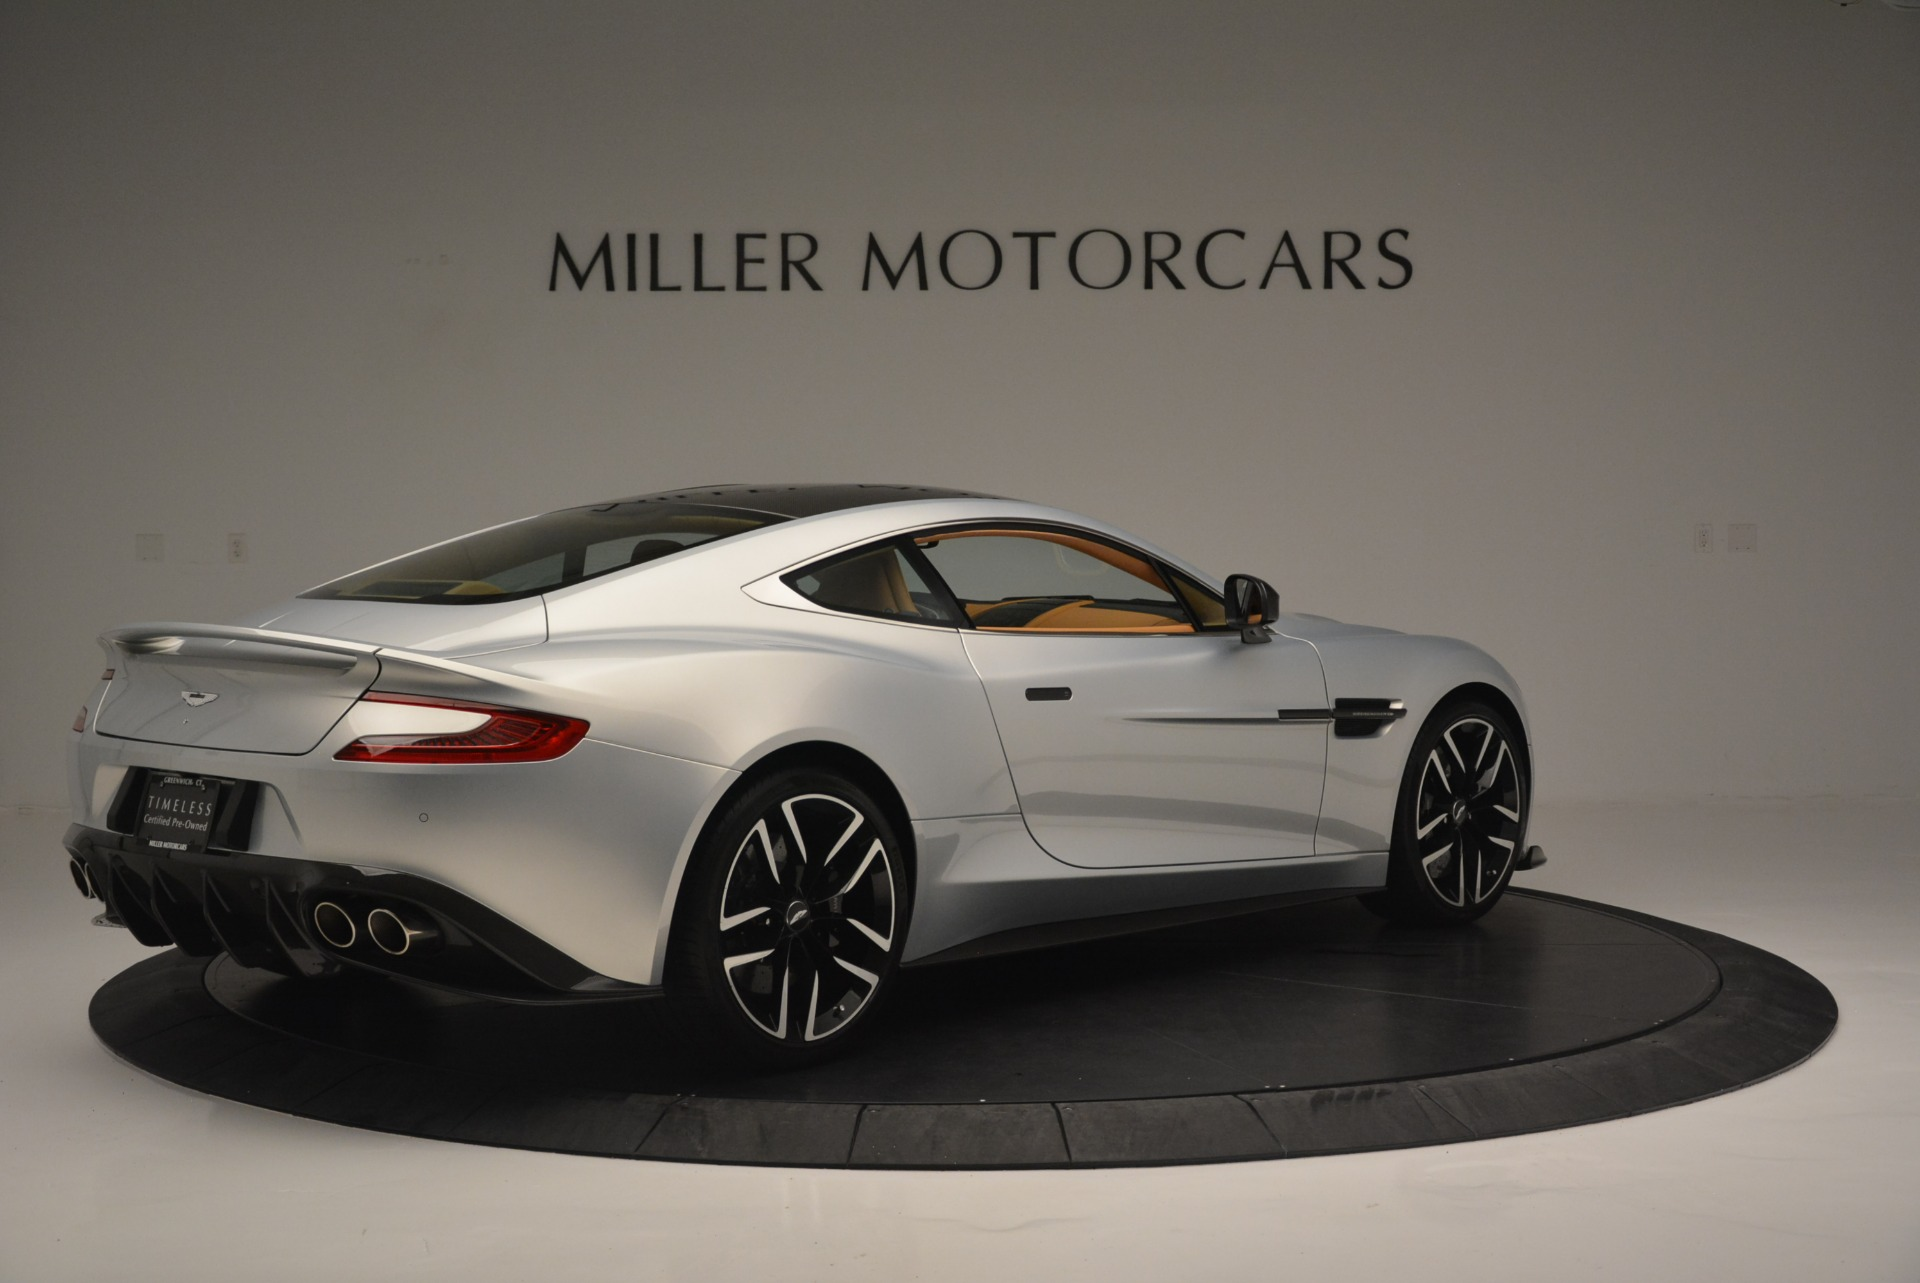 Used 2018 Aston Martin Vanquish S Coupe For Sale 219900 In Greenwich, CT